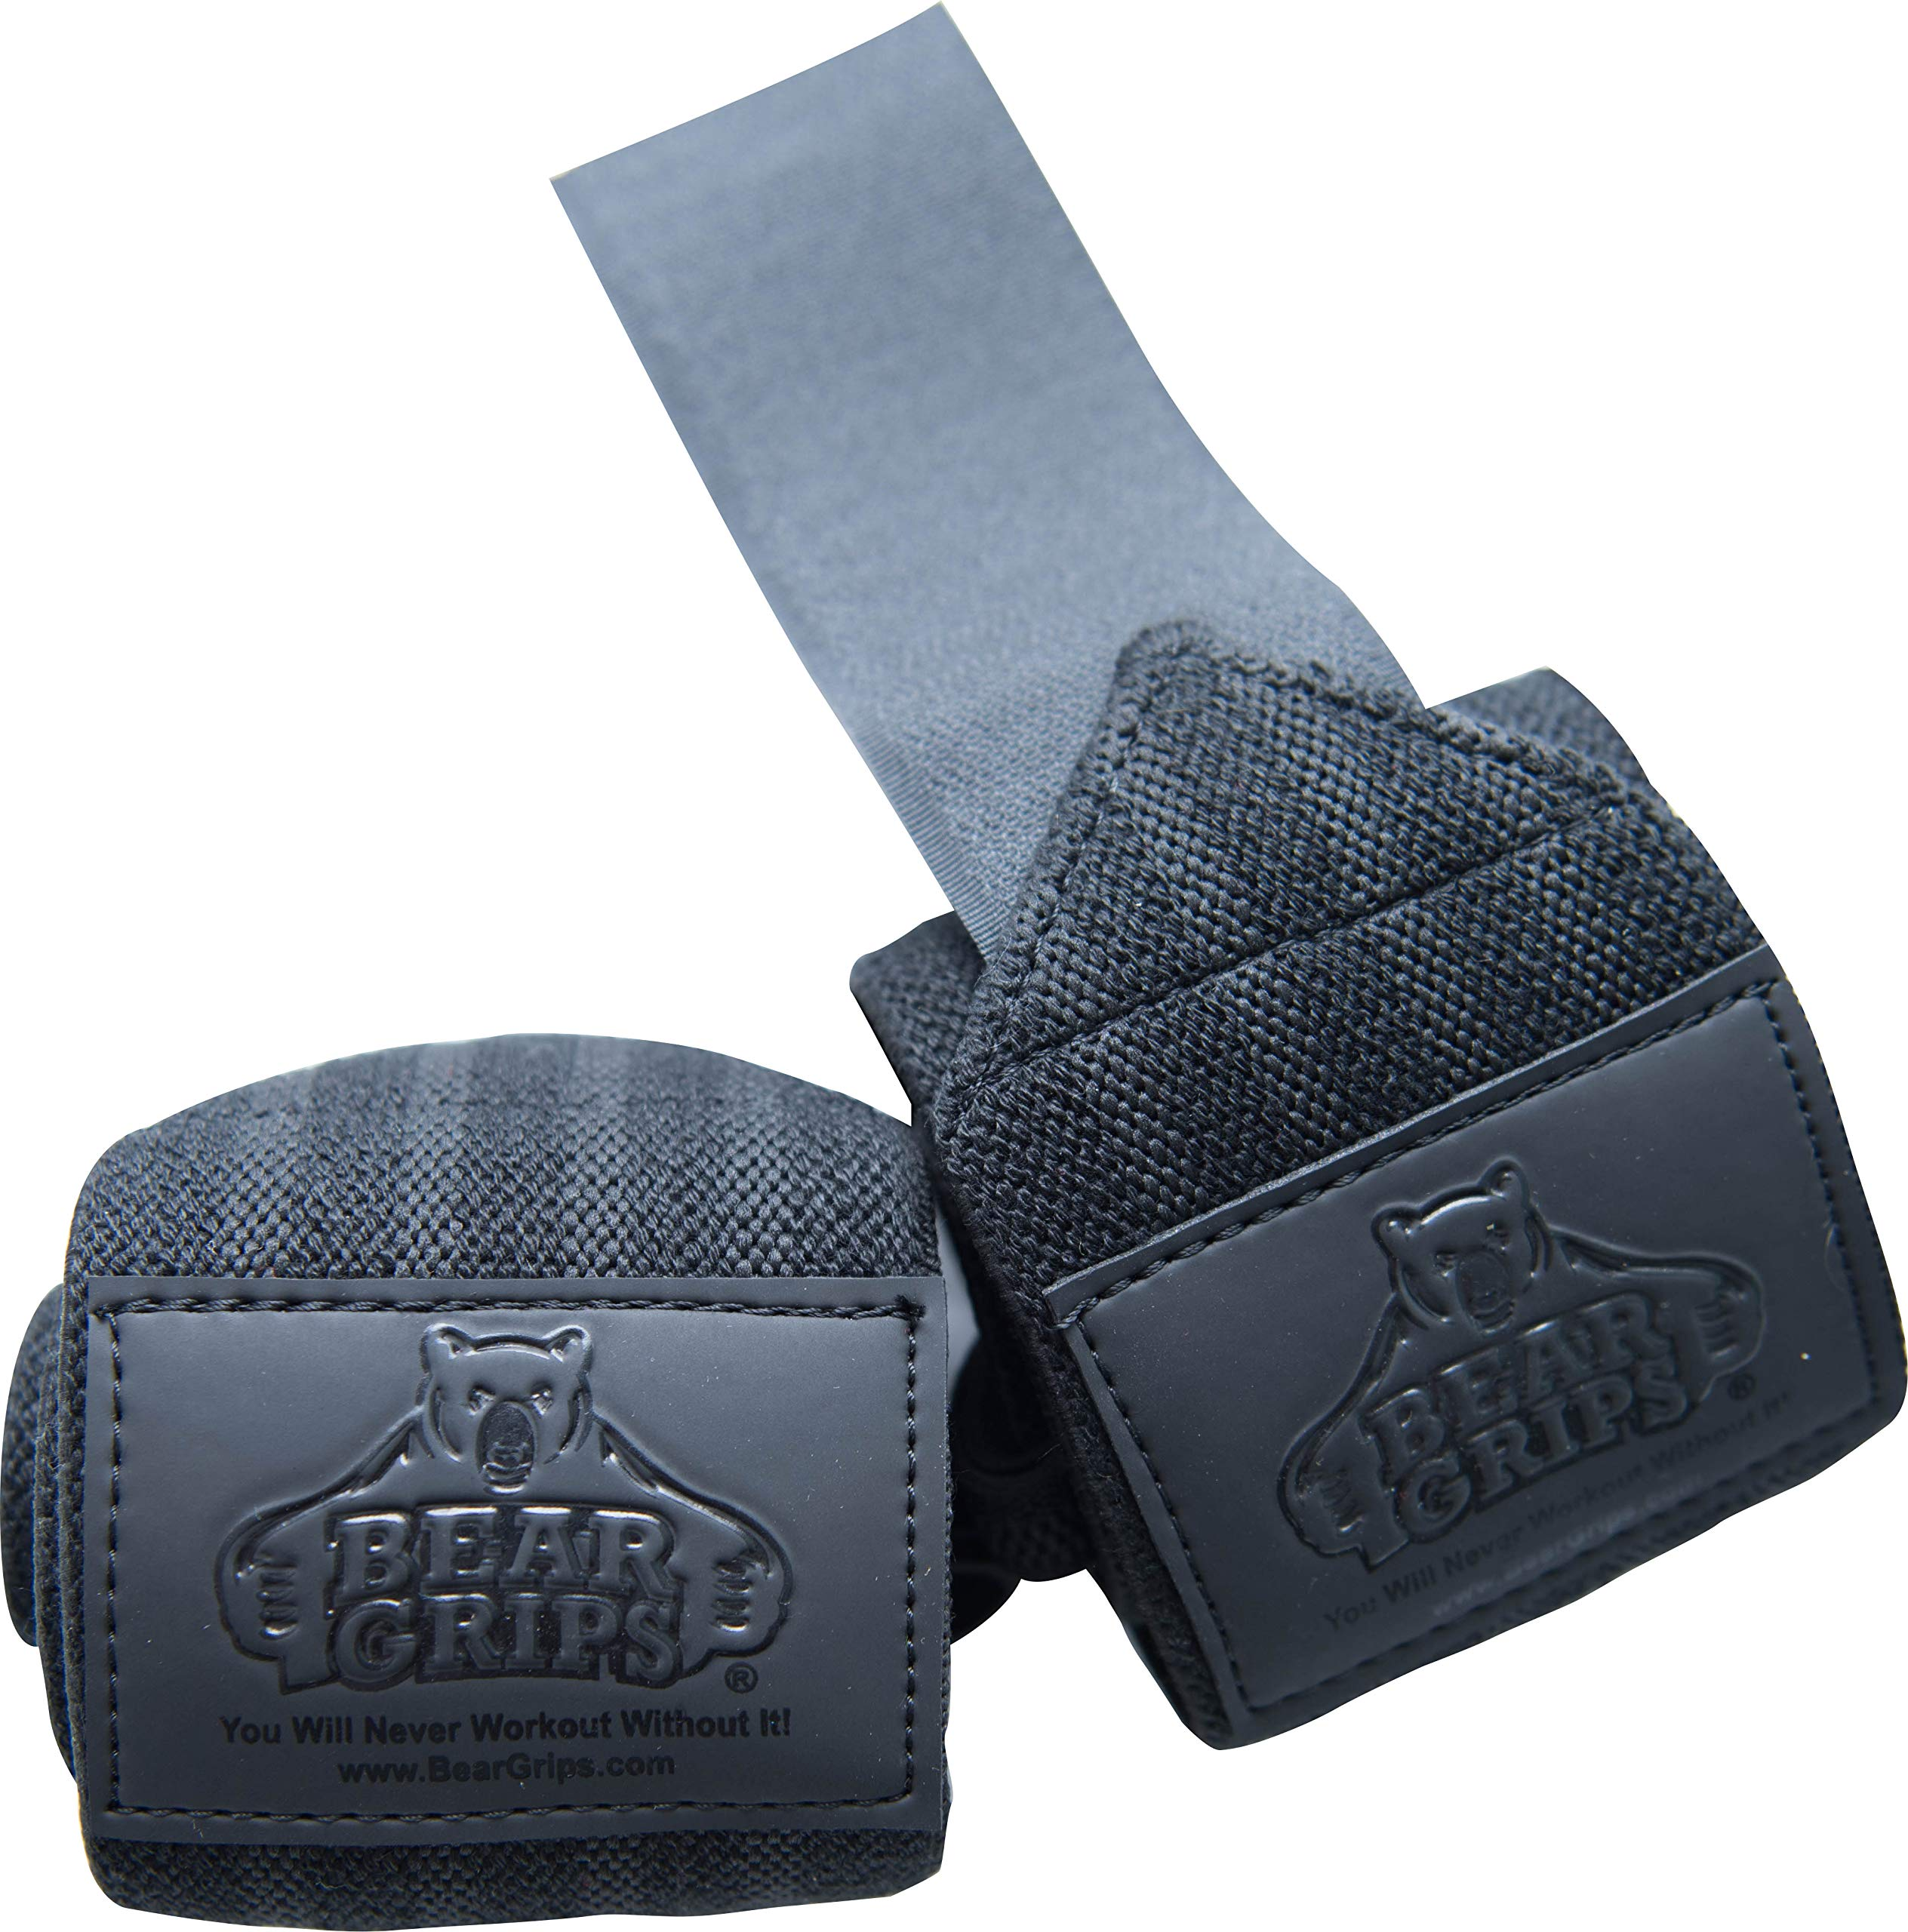 Bear Grips Gray Series, White Series Wrist-Wraps, Extra-Strength Wrist Support, Wrist Brace for Workouts (Colors: Black on Black, Sizes: 18'', Sold in Pairs, Two Wrist Straps per Pack)